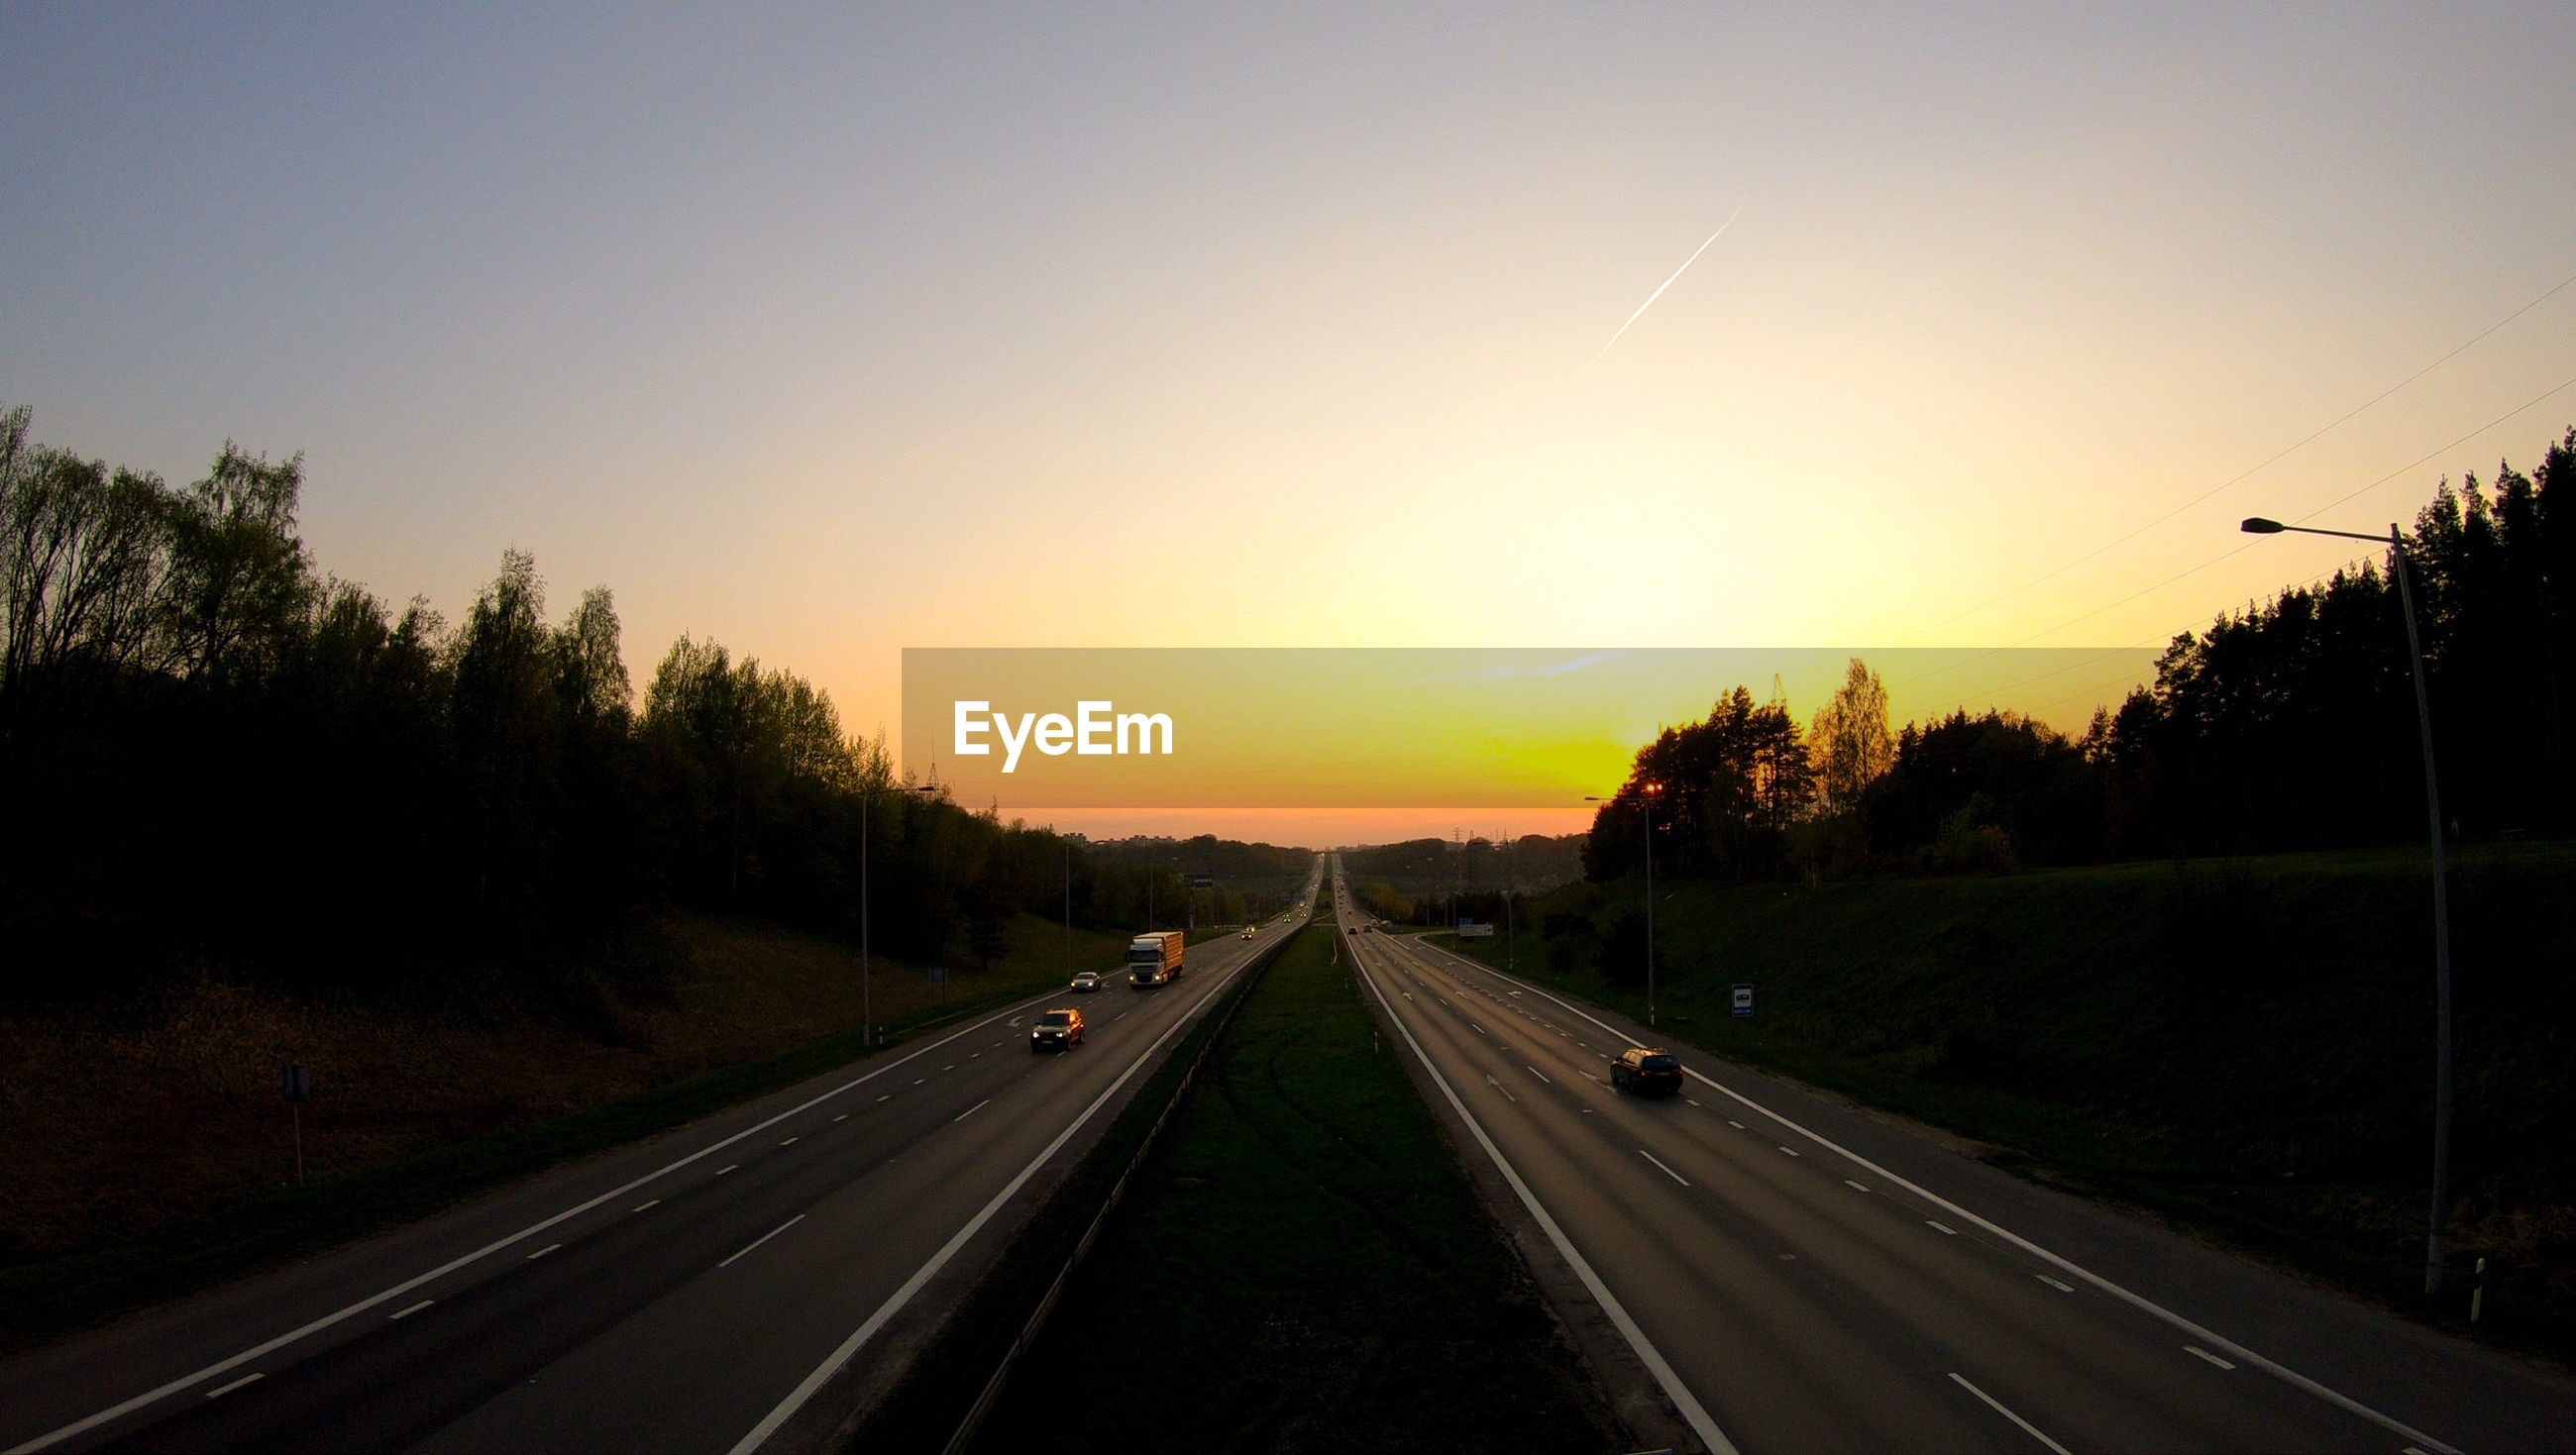 Diminishing perspective of road against sky during sunset